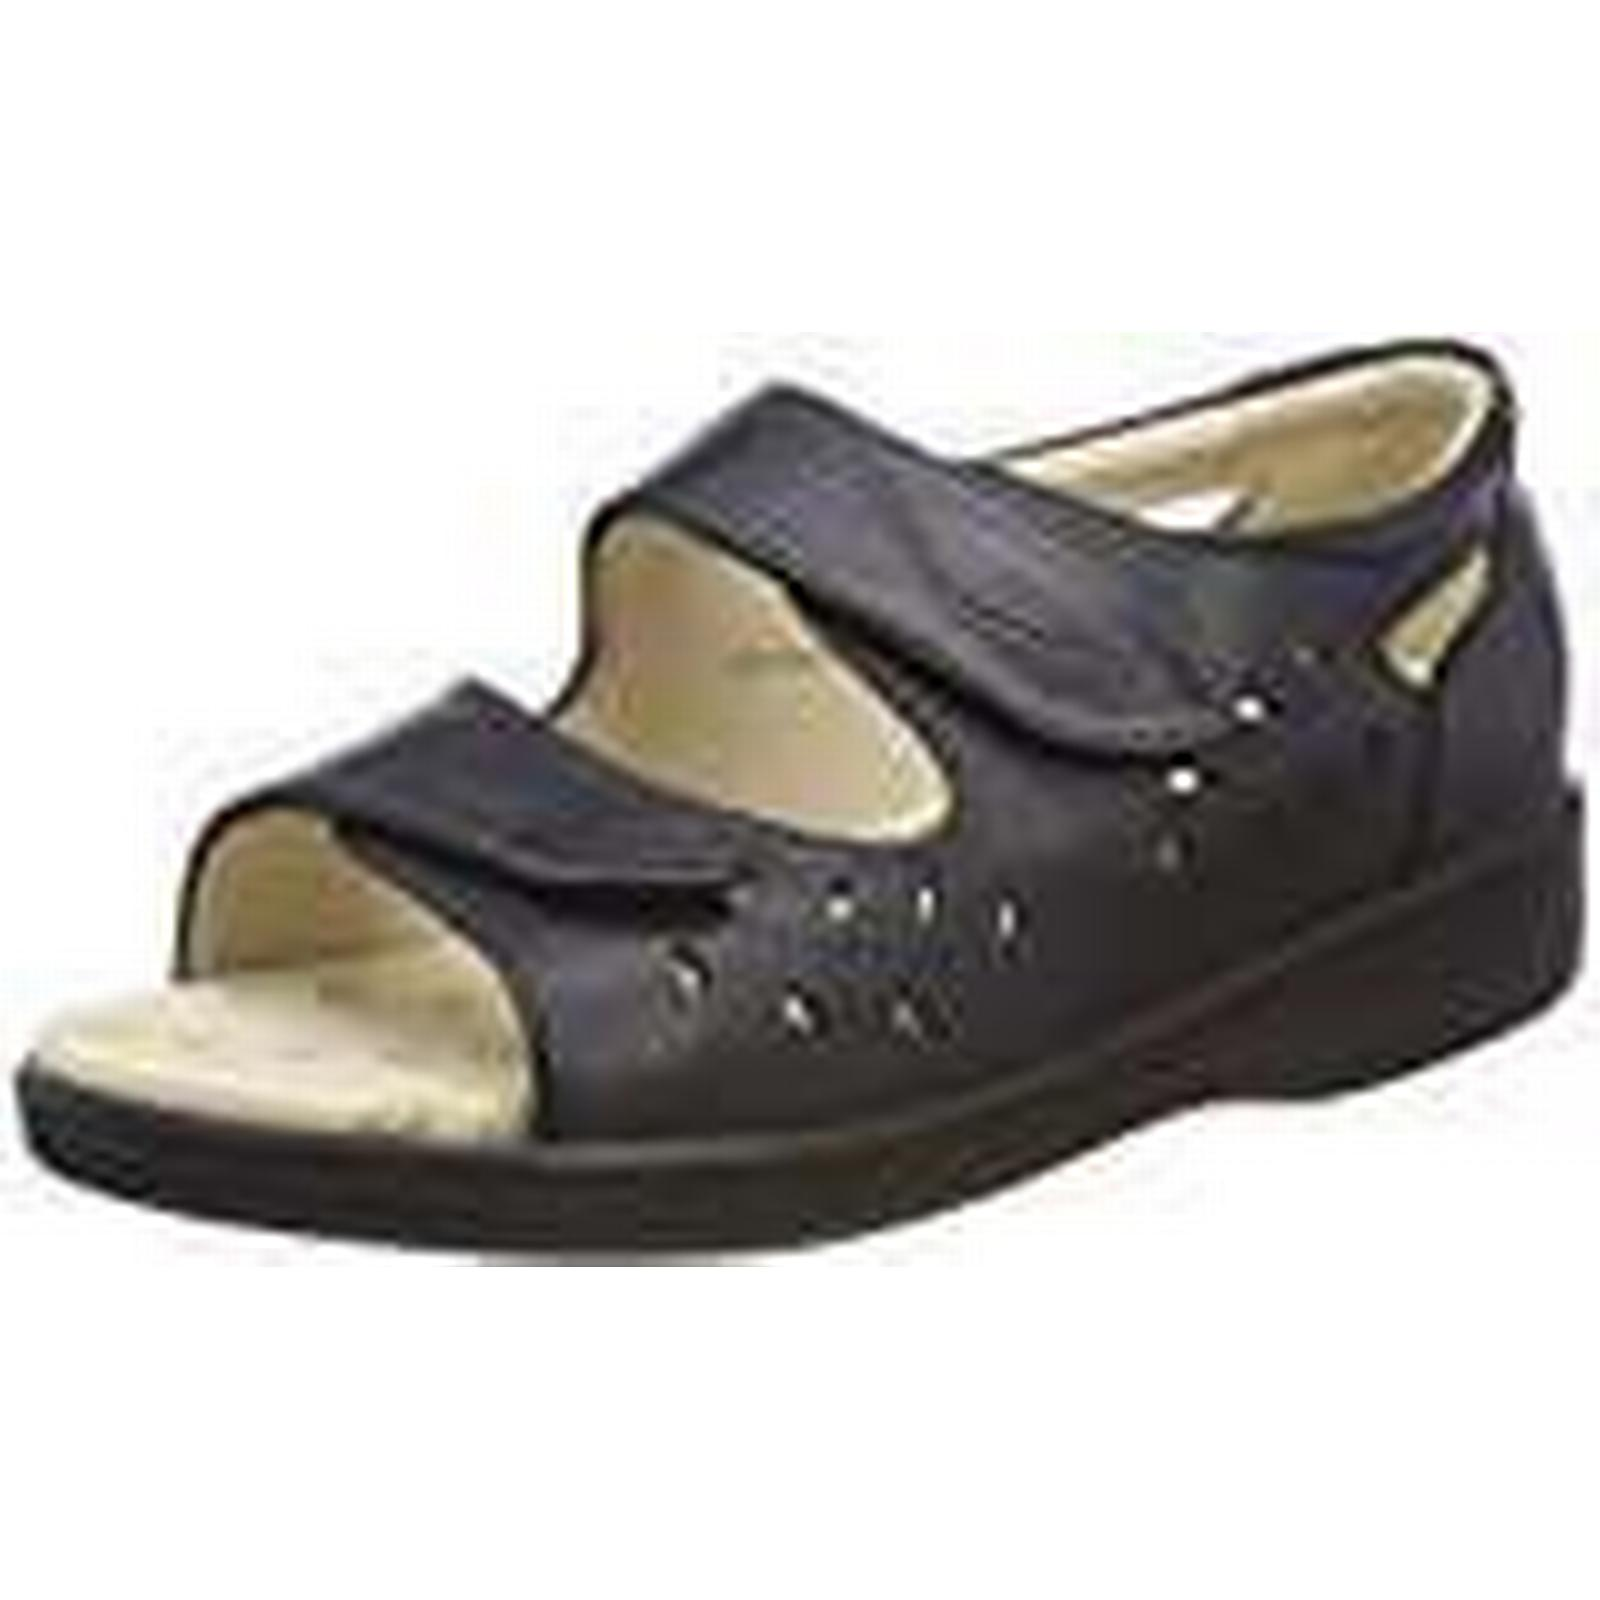 Padders Plus Women's Heatwave Open Toe Sandals, Blue EU) (Navy 24), 4 (37 EU) Blue 534e9f